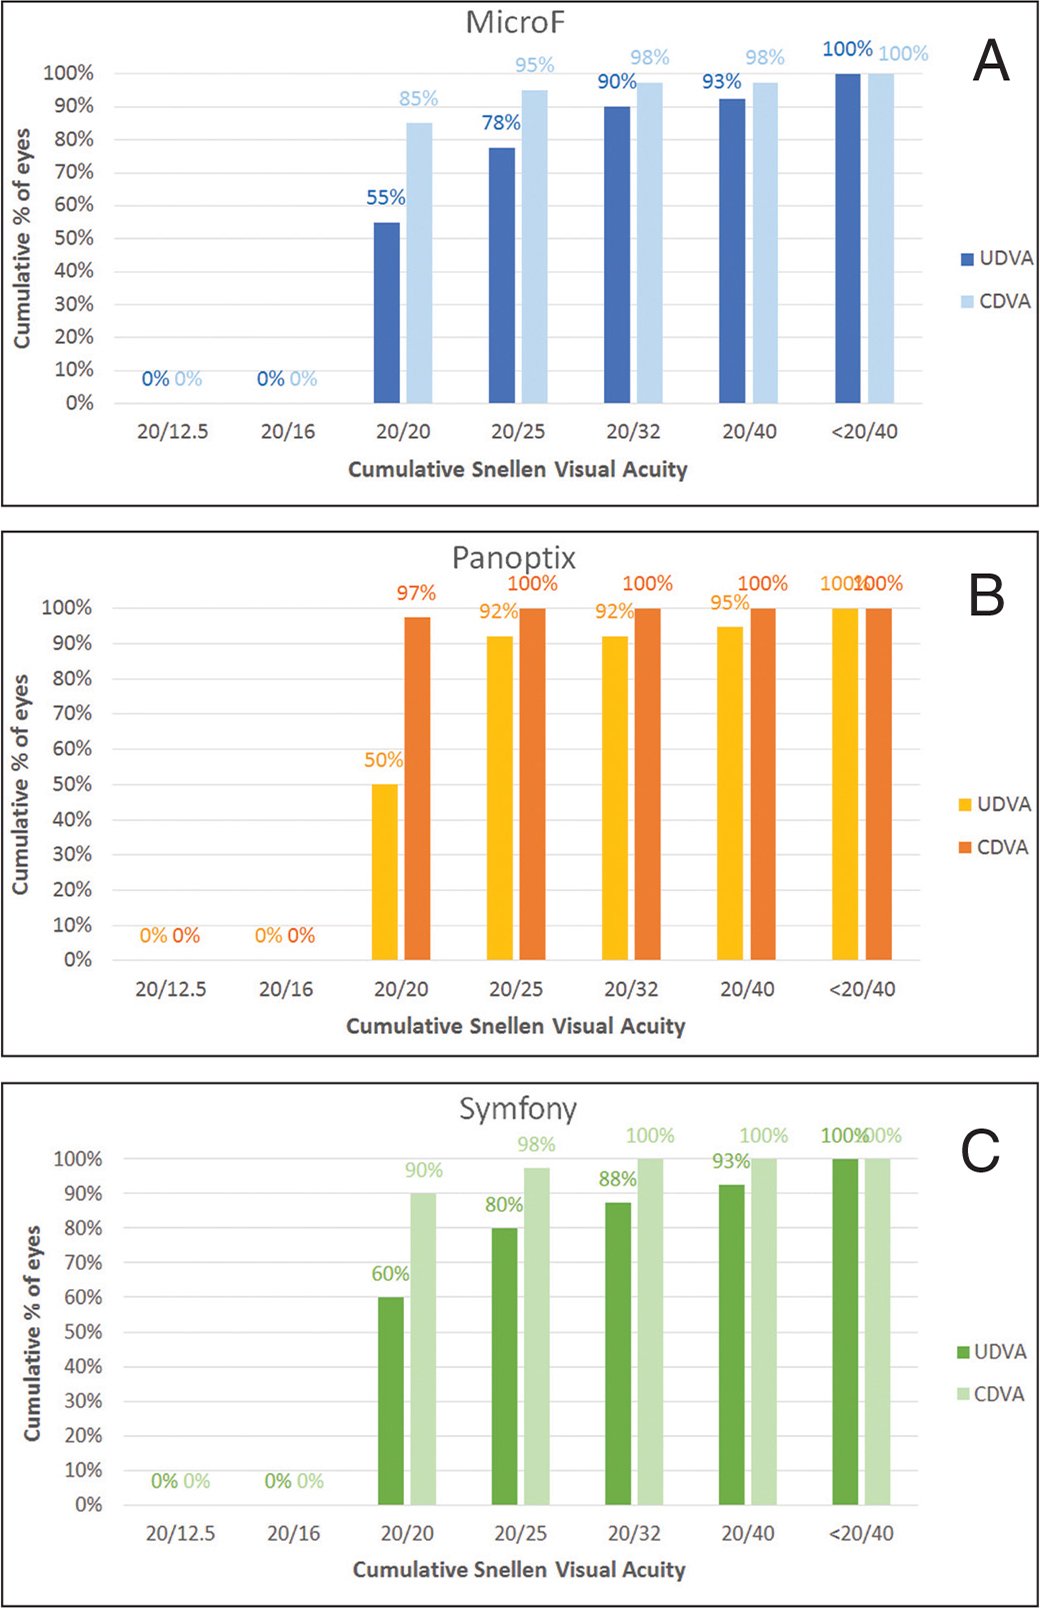 Culmulative distribution of uncorrected (UDVA) and corrected (CDVA) distance visual acuity for the three intraocular lenses: (A) FineVision Micro F (PhysIOL SA, Liège, Belgium), (B) AcrySof IQ PanOptix (Alcon Laboratories, Inc., Fort Worth, TX), and (C) TECNIS Symfony (Abbott Medical Optics, Inc., Abbott Park, IL).